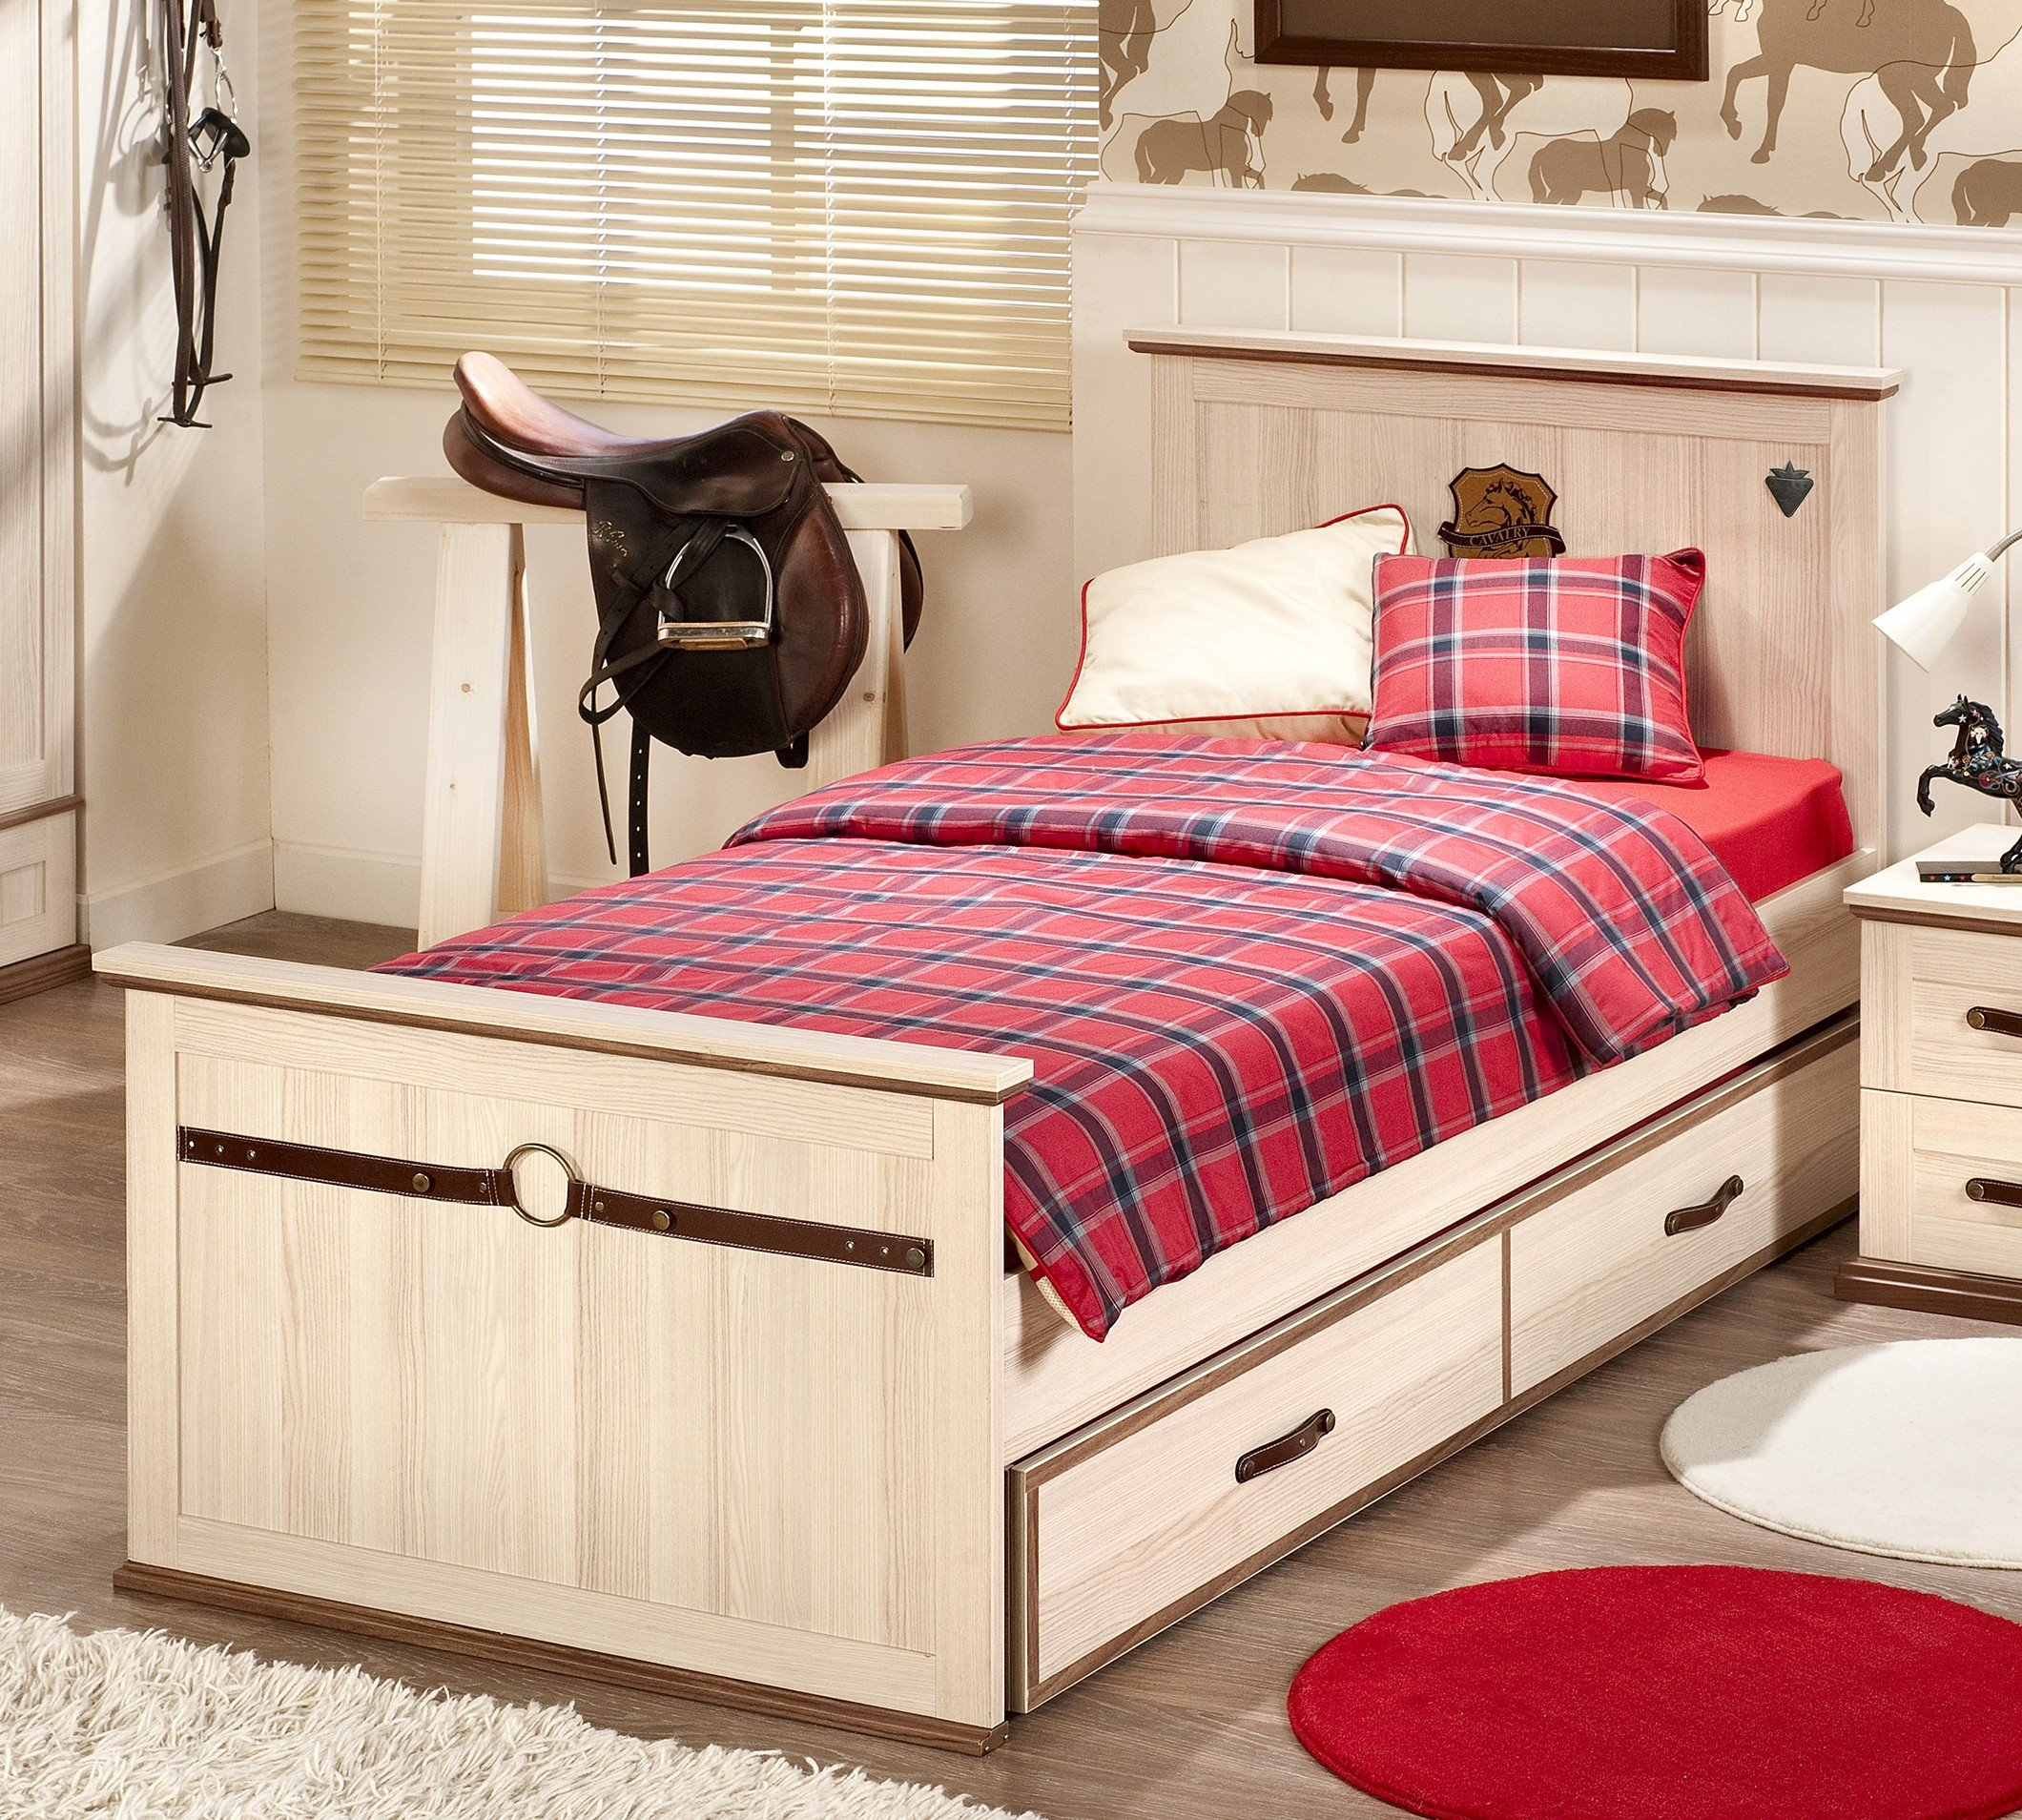 royal l bett 100x200cm sch nes bett f r kinder und jugendliche. Black Bedroom Furniture Sets. Home Design Ideas